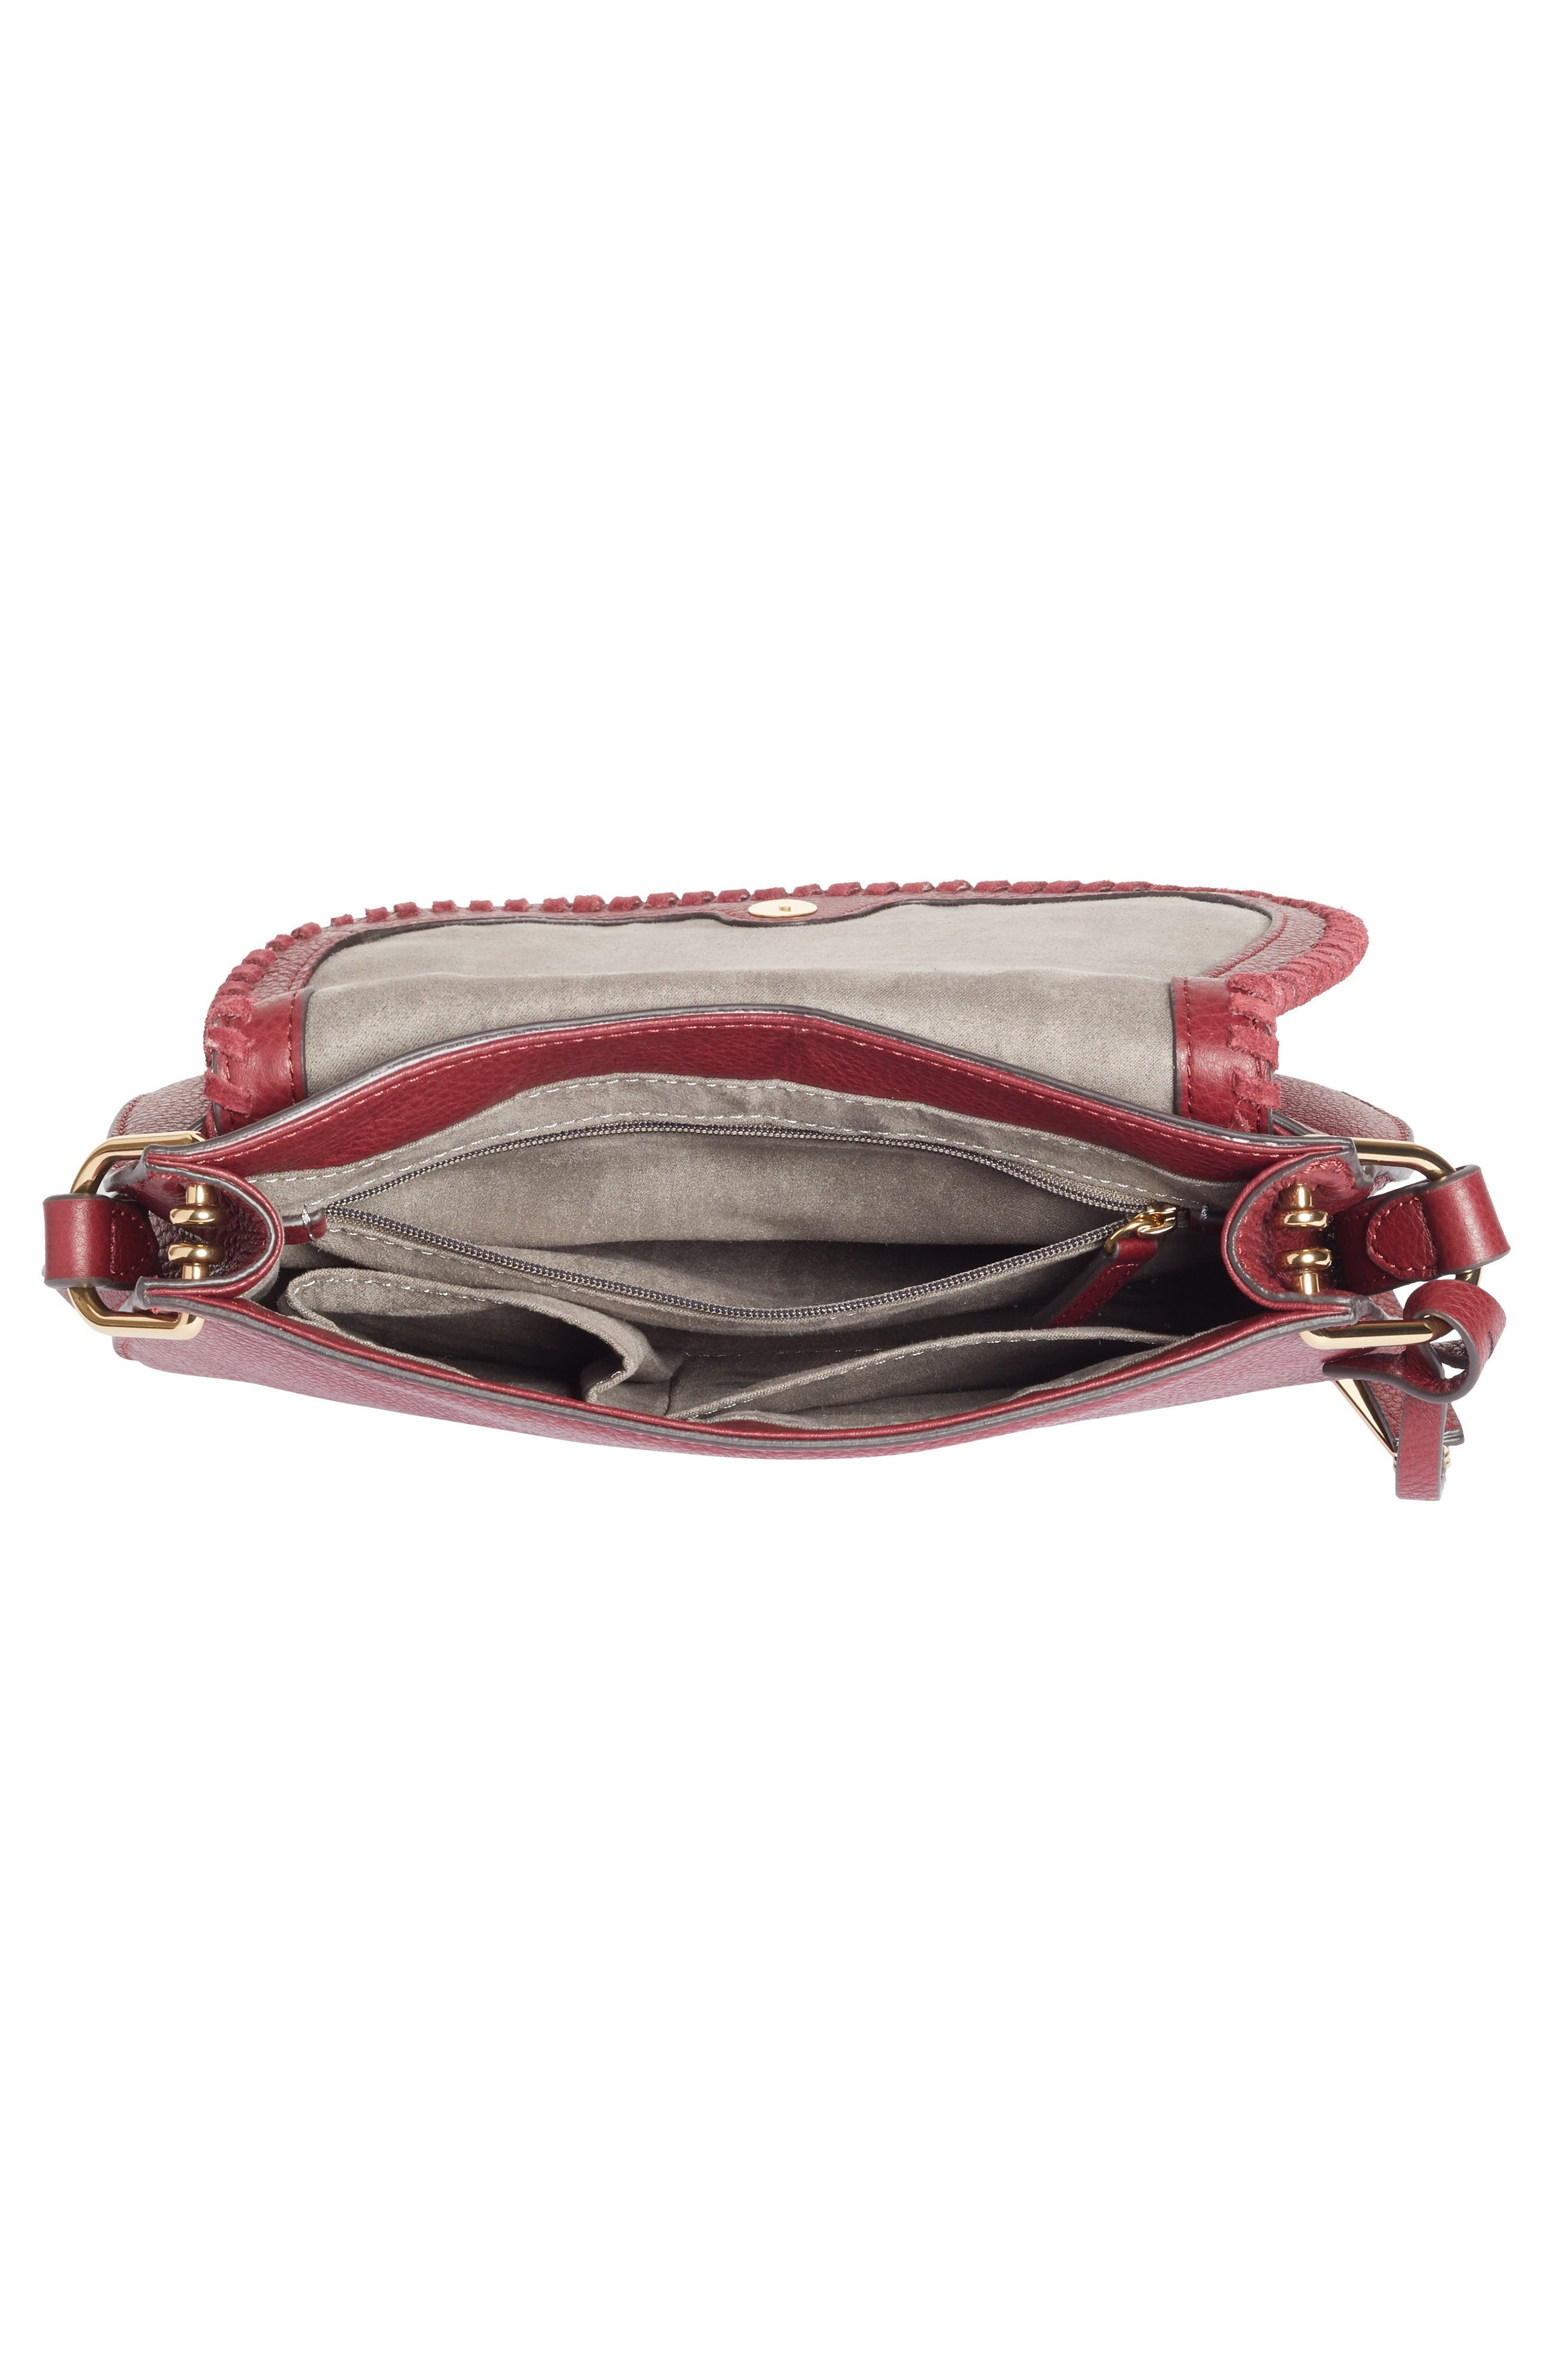 Alternate Image 4  - Vince Camuto Kirie Suede & Leather Crossbody Saddle Bag (Nordstrom Exclusive)